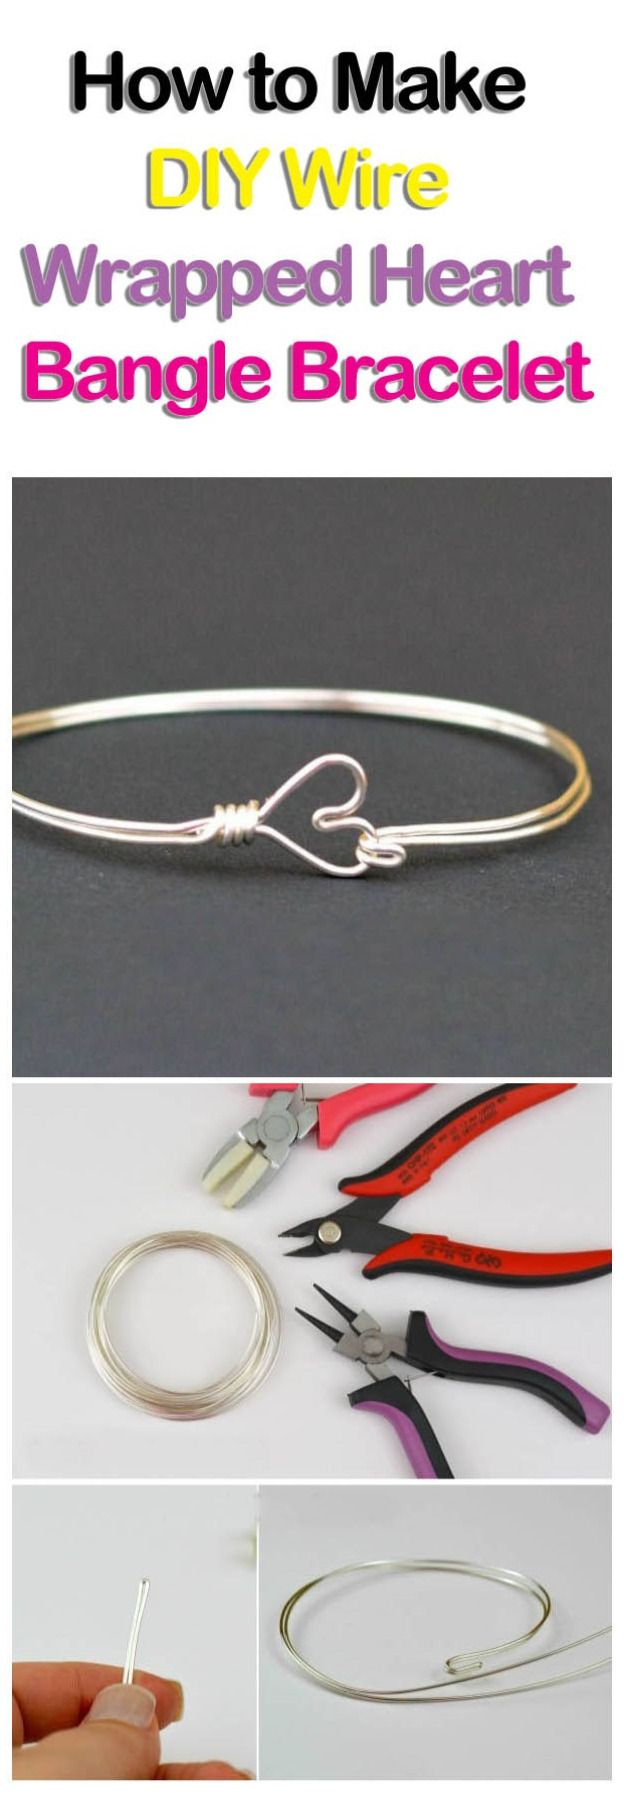 How to Make DIY Wire Wrapped Heart Bangle Bracelet